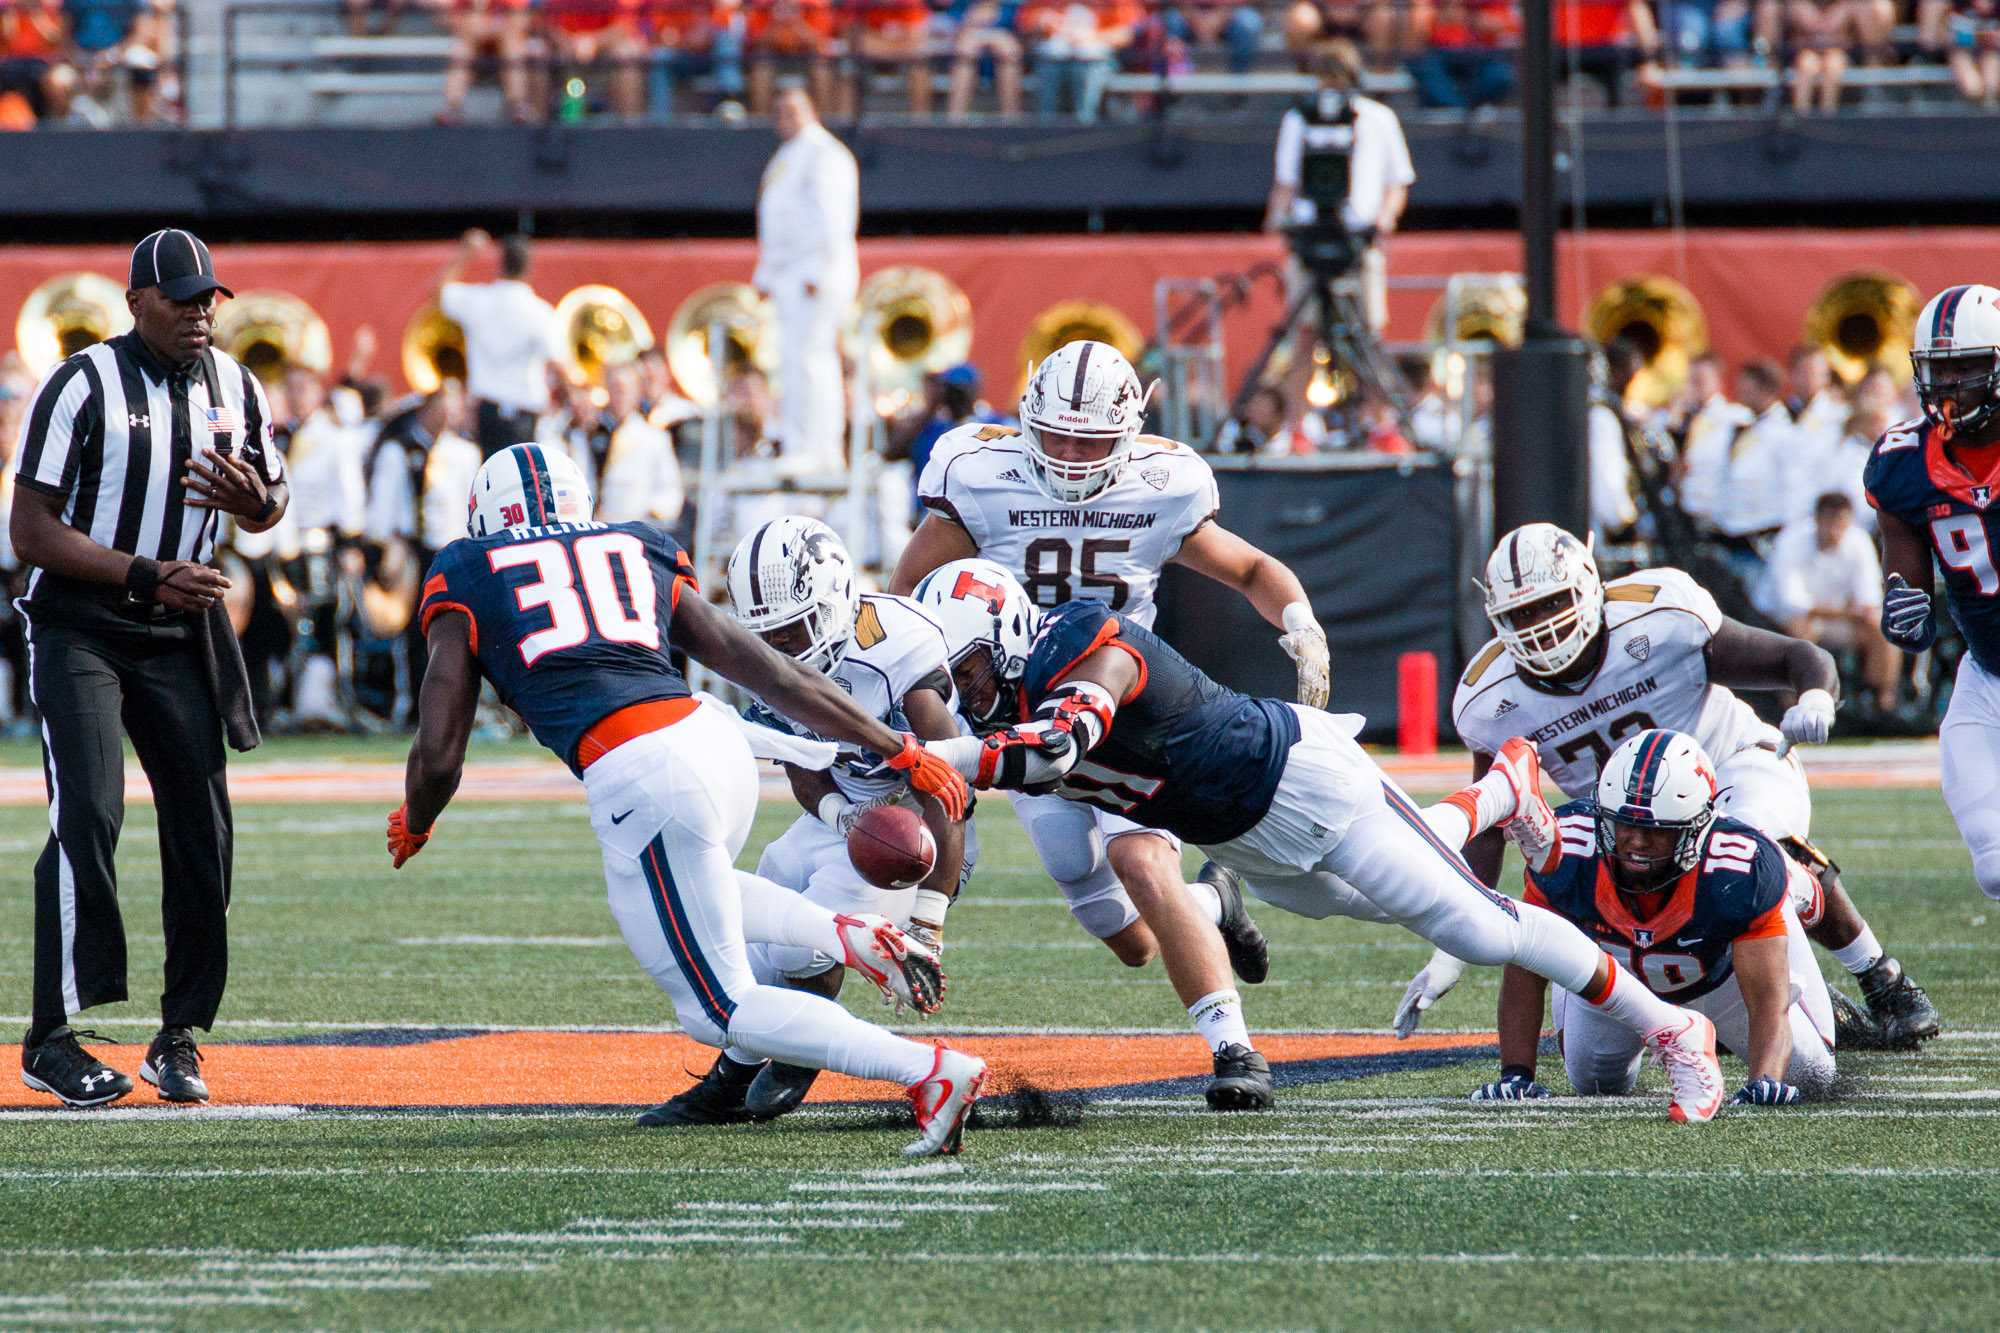 Illinois defensive lineman Dawuane Smoot (91) forces a fumble by Western Michigan running back Jamauri Bogan (32) during the the game against Western Michigan at Memorial Stadium on Saturday, September 17. The Illini lost 34-10.